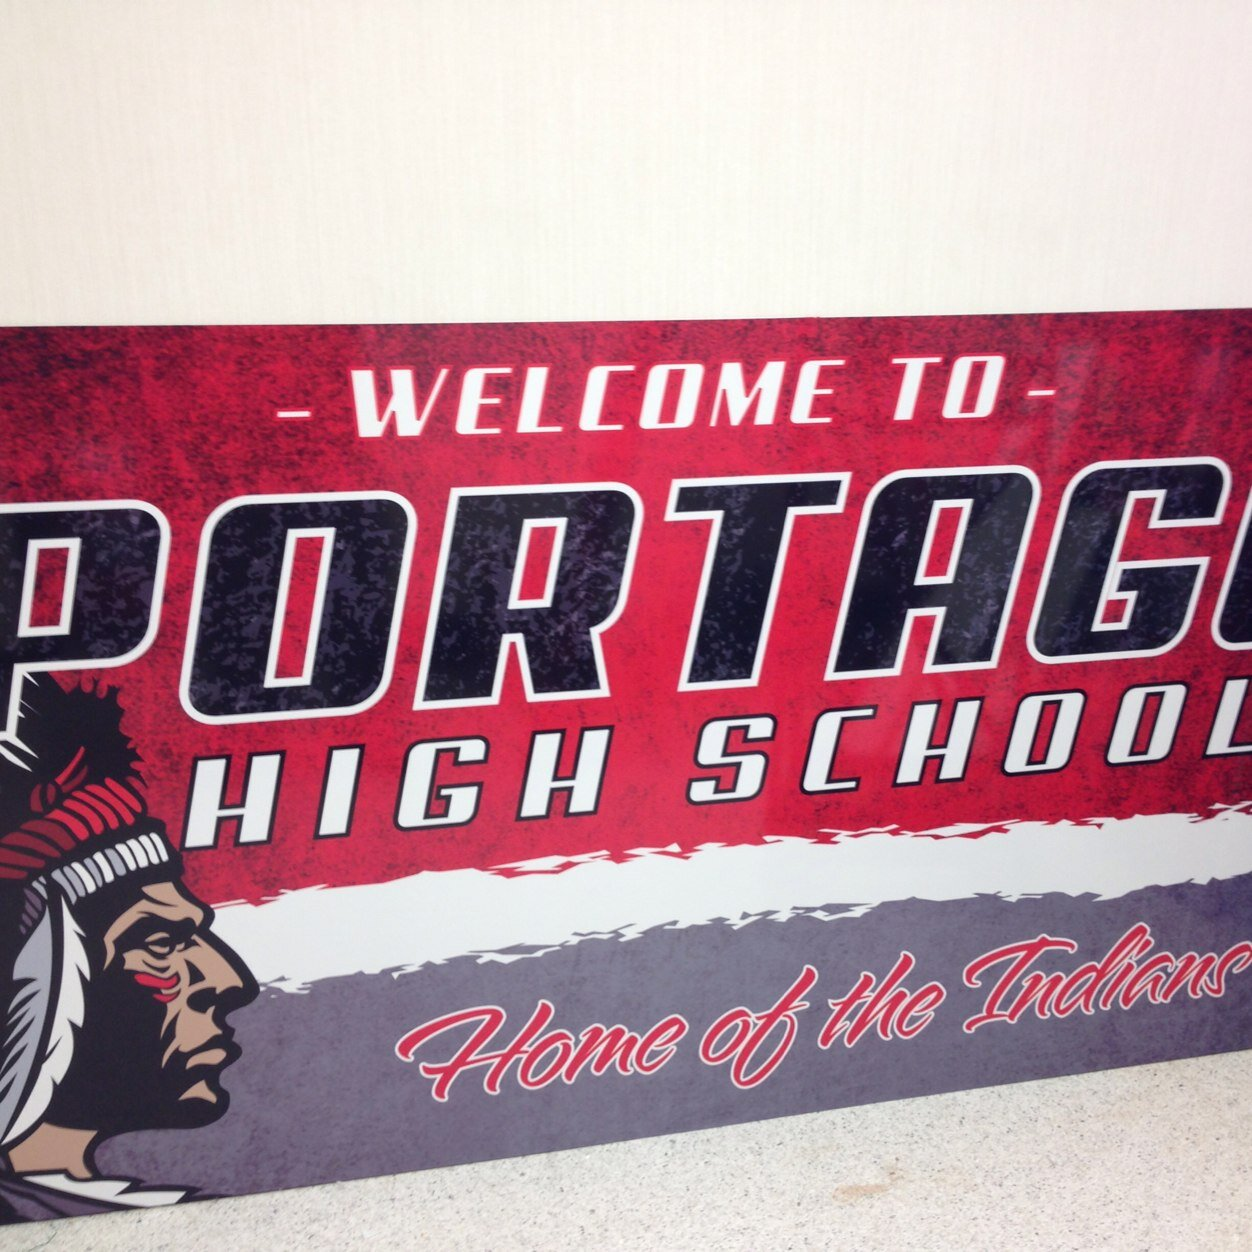 Portage High School